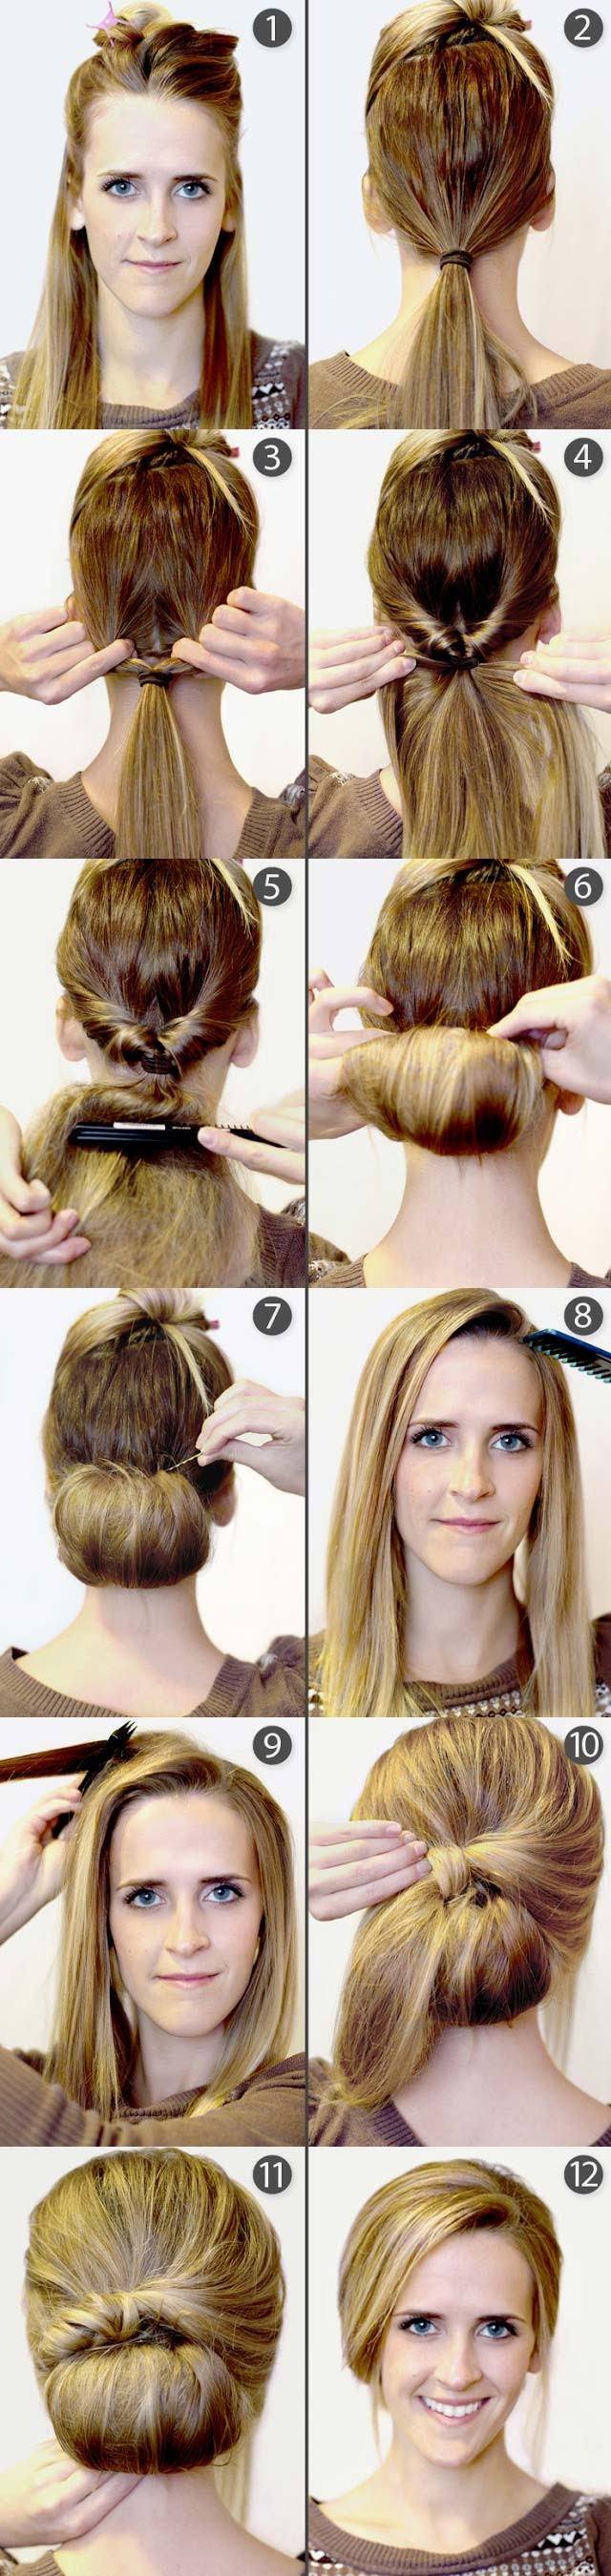 Magnificent 15 Cute Hairstyles Step By Step Hairstyles For Long Hair Hairstyles For Women Draintrainus